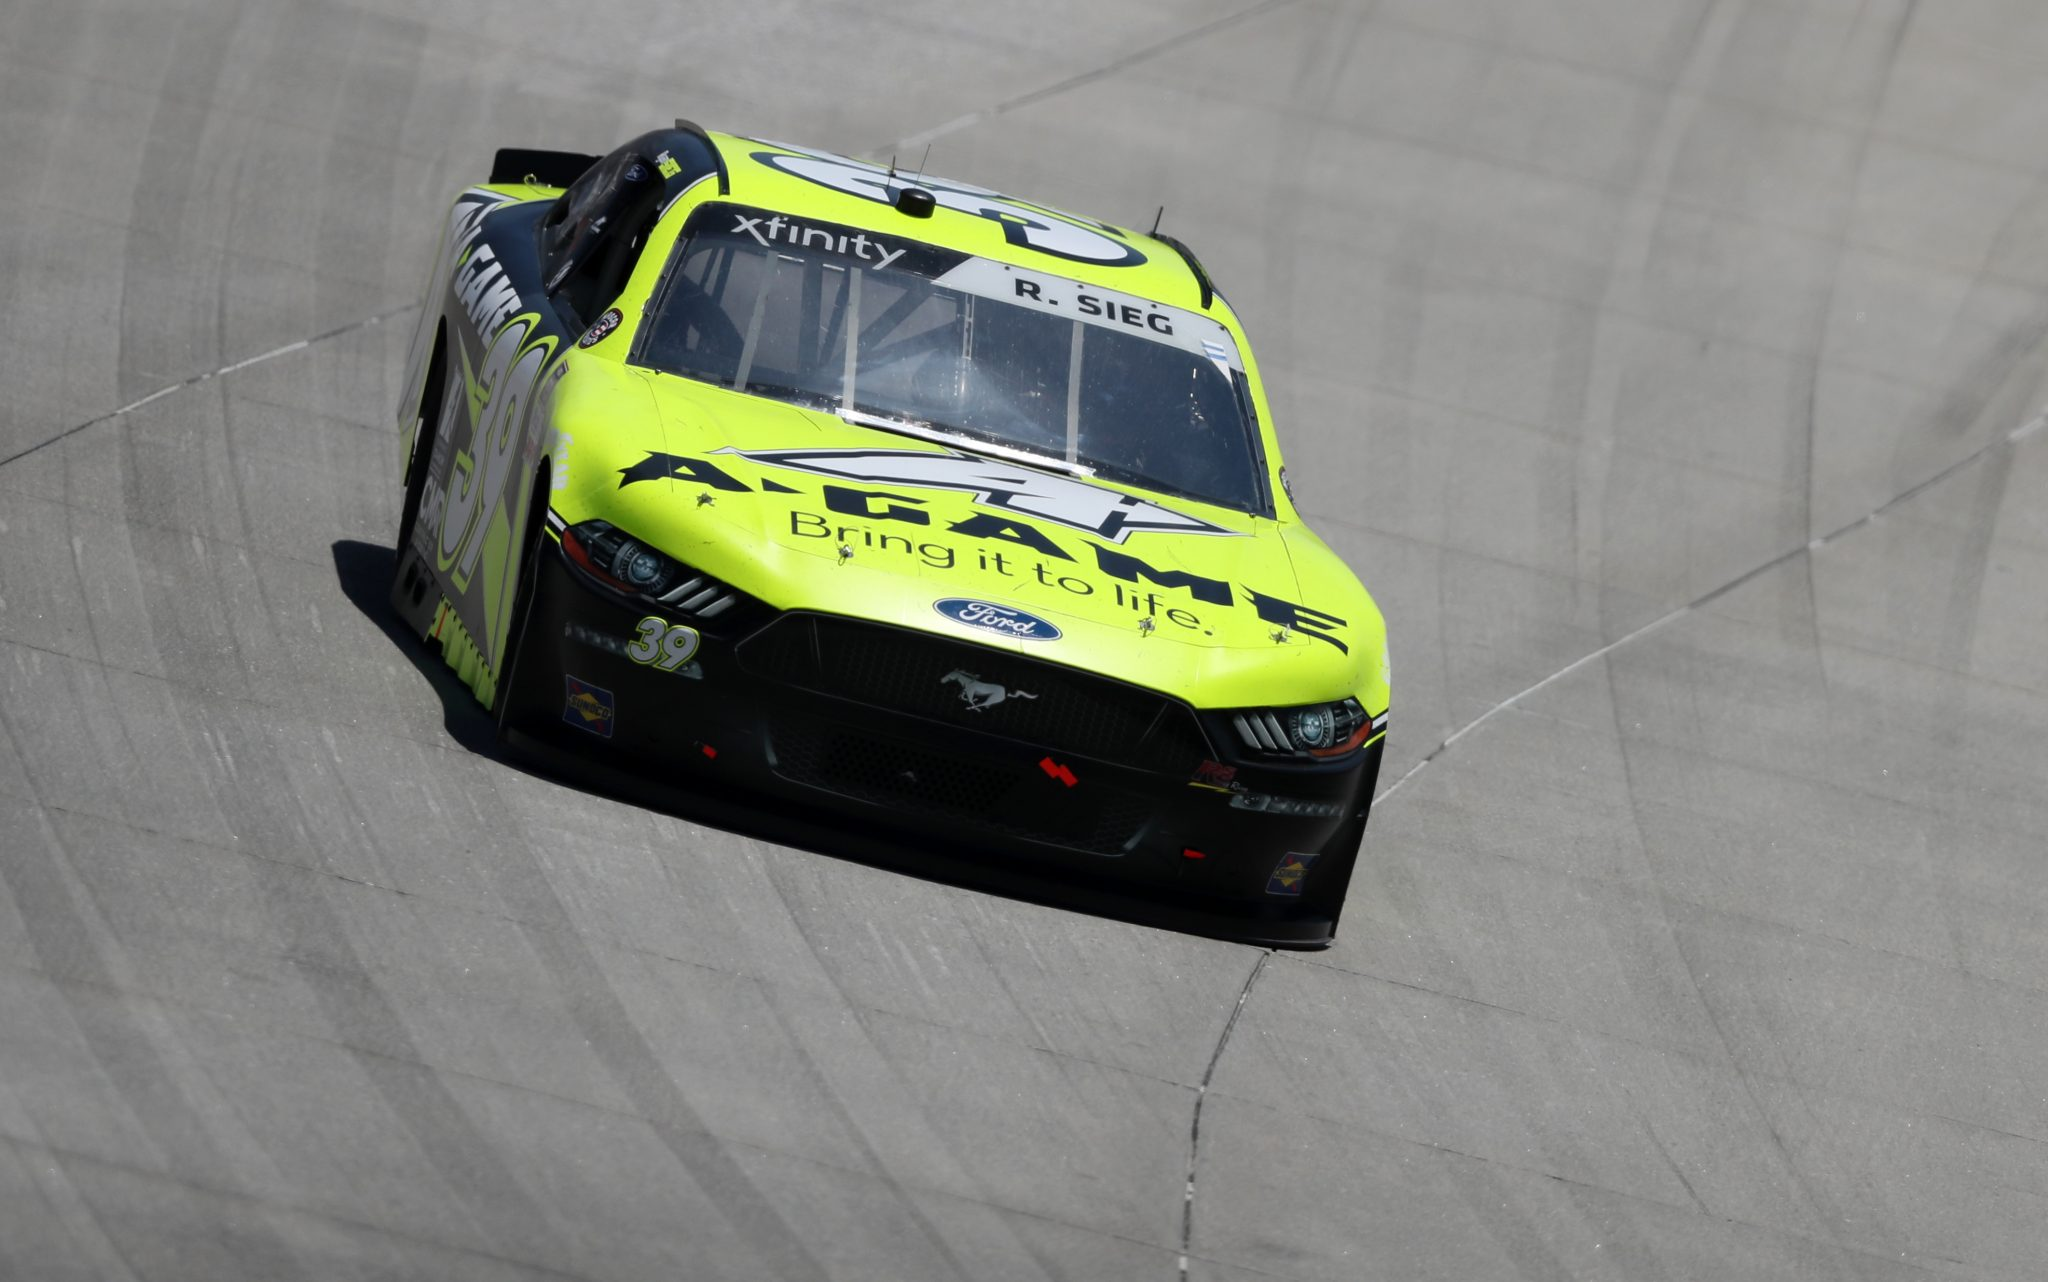 DOVER, DELAWARE - MAY 15: Ryan Sieg, driver of the #39 CMR Construction and Roofing Ford, races during the NASCAR Xfinity Series Drydene 200 race at Dover International Speedway on May 15, 2021 in Dover, Delaware. (Photo by James Gilbert/Getty Images) | Getty Images